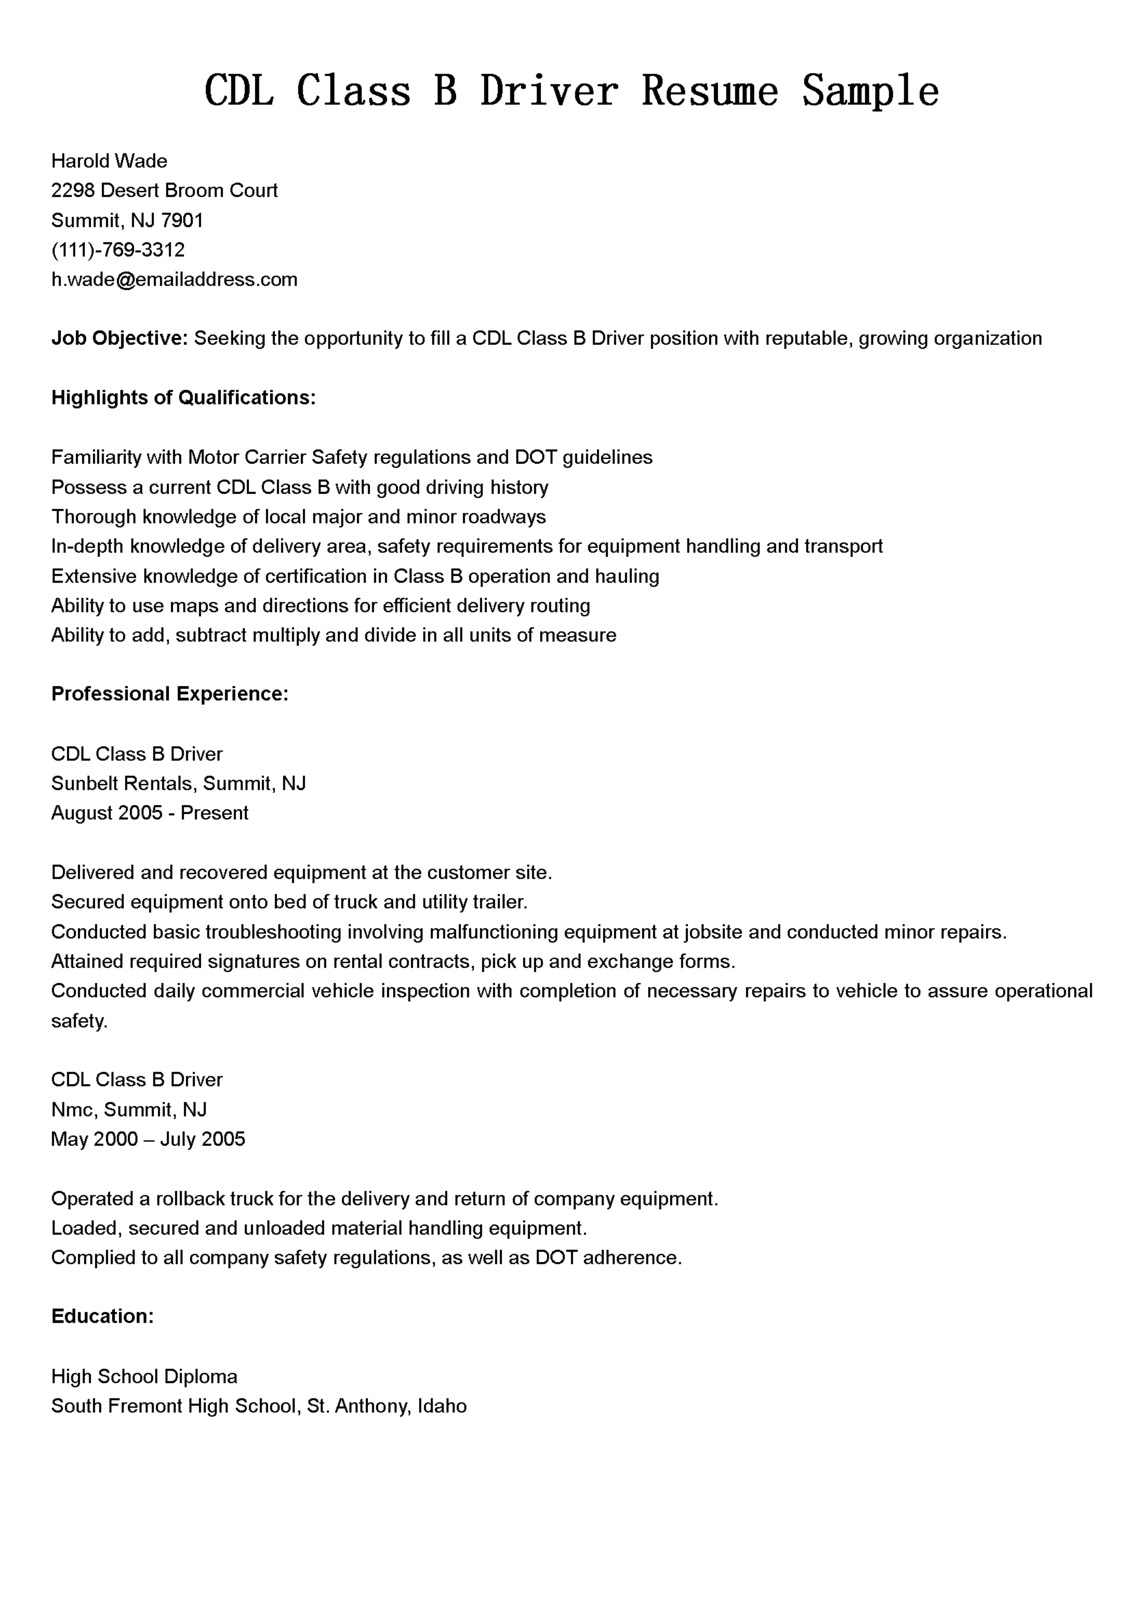 emt resume resume format download pdf sample of attorney resume emt job description for resume